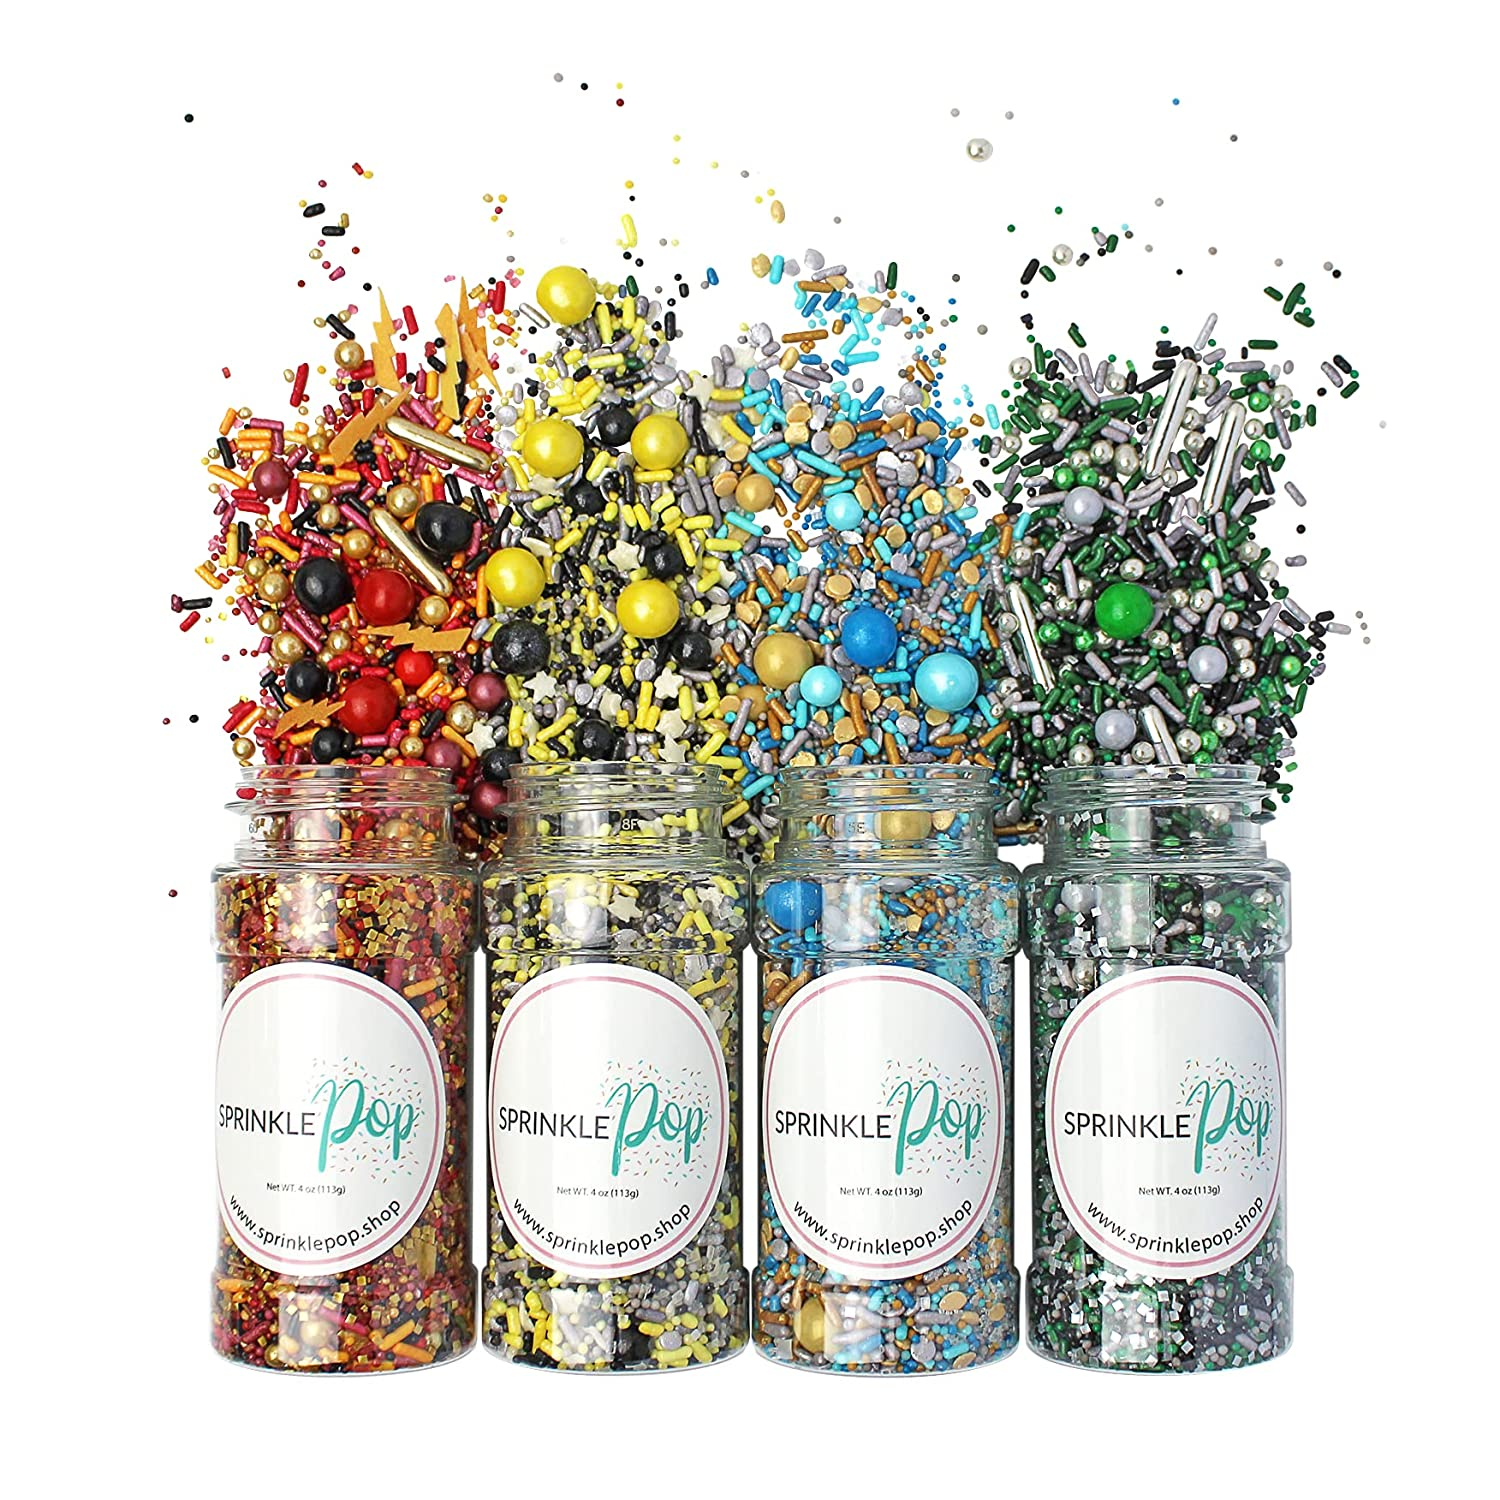 The Wizarding Set 4 Magical Max 81% OFF Ranking TOP4 Colorful Candy Sprinkles For Ba Mix